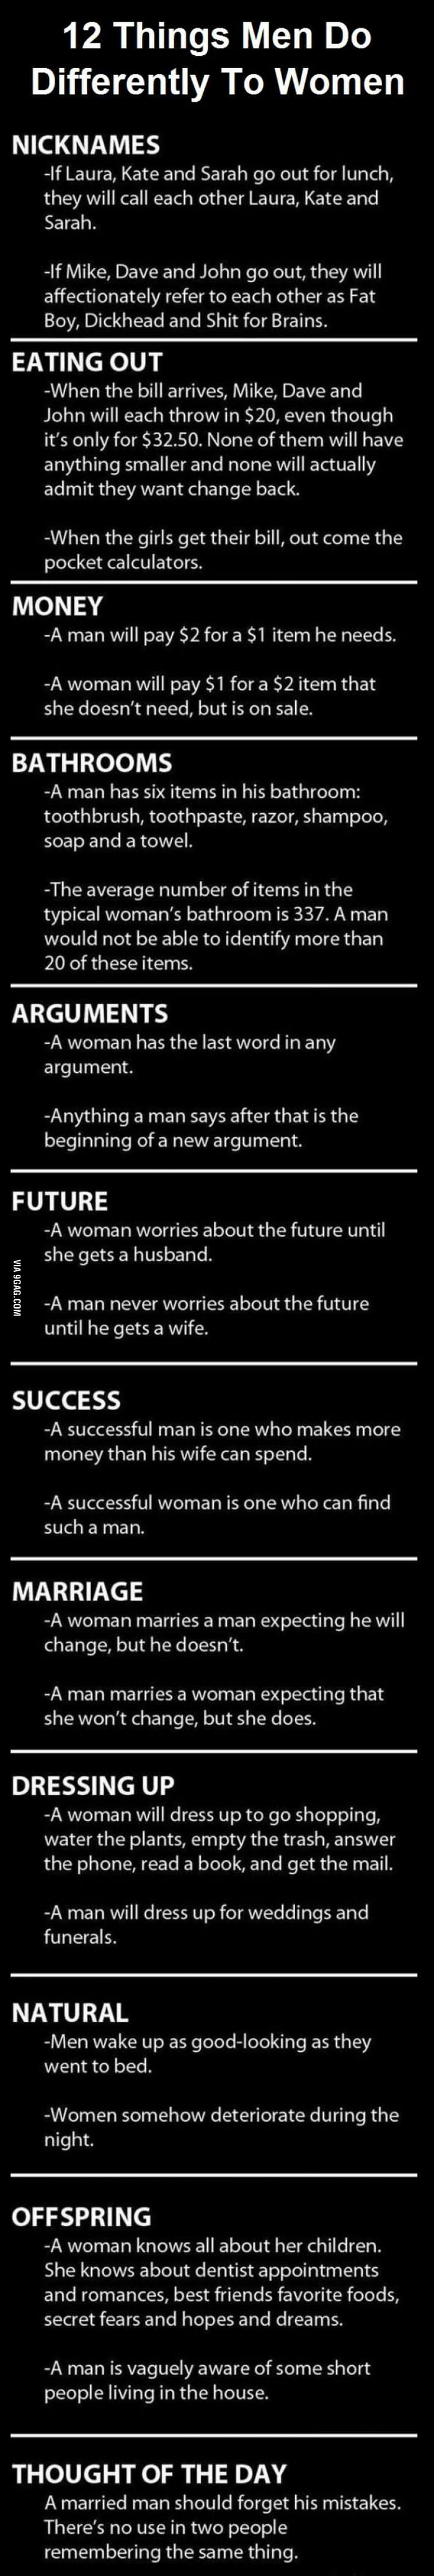 12 Things Men/Women do differently.